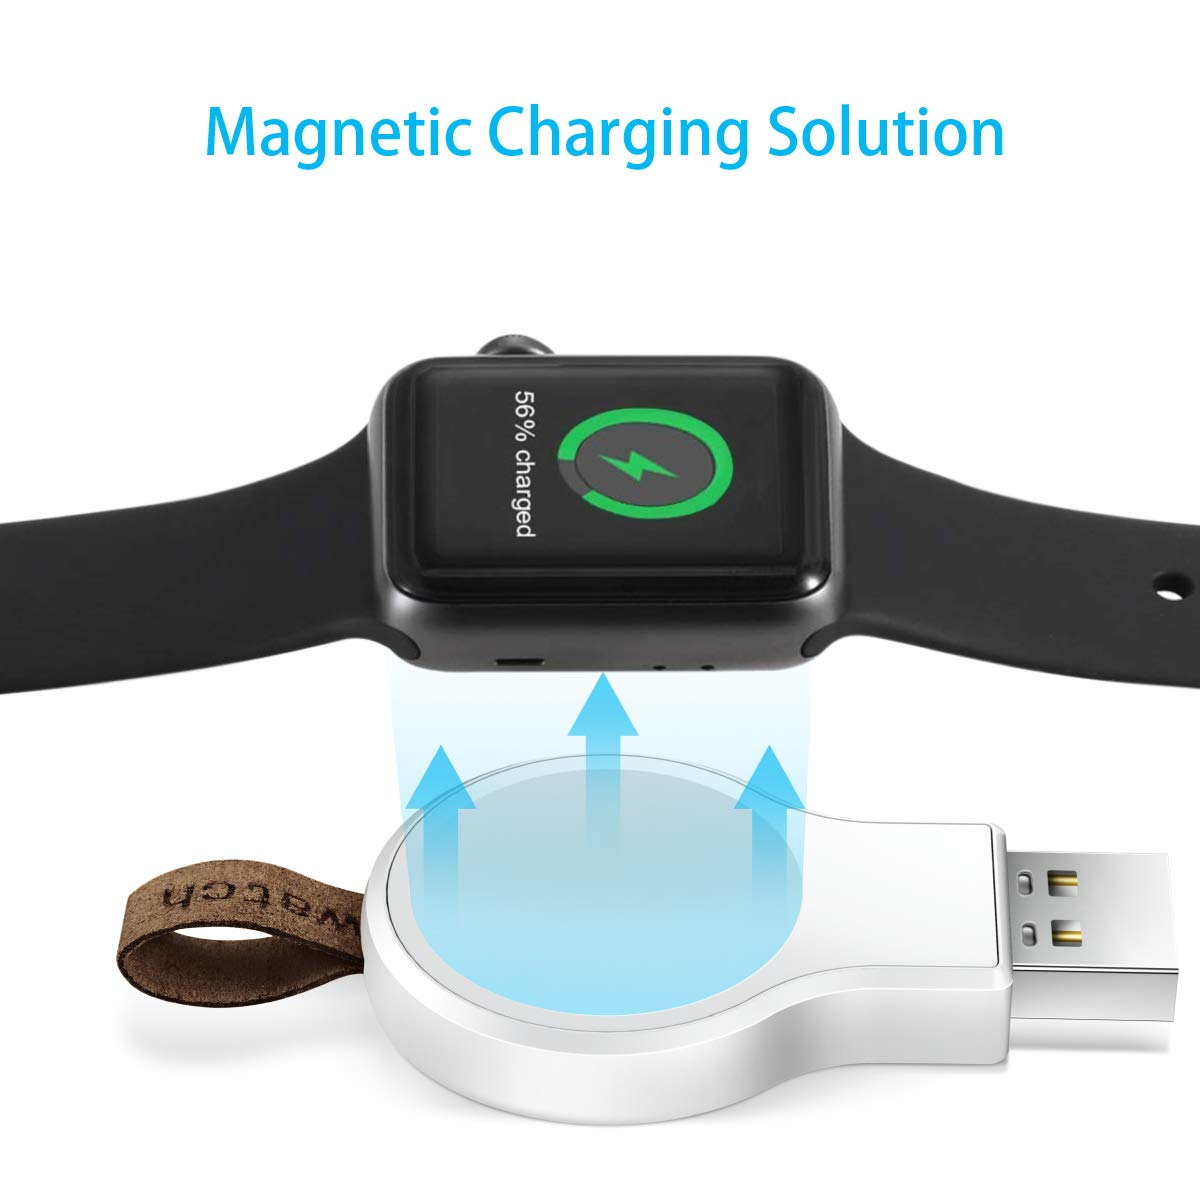 SKNONO Wireless Charger for Apple Watch, Portable Magnetic Apple Watch Charger, Compatible with iWatch1/2/3/4/5 (38mm 40mm 42mm 44mm)